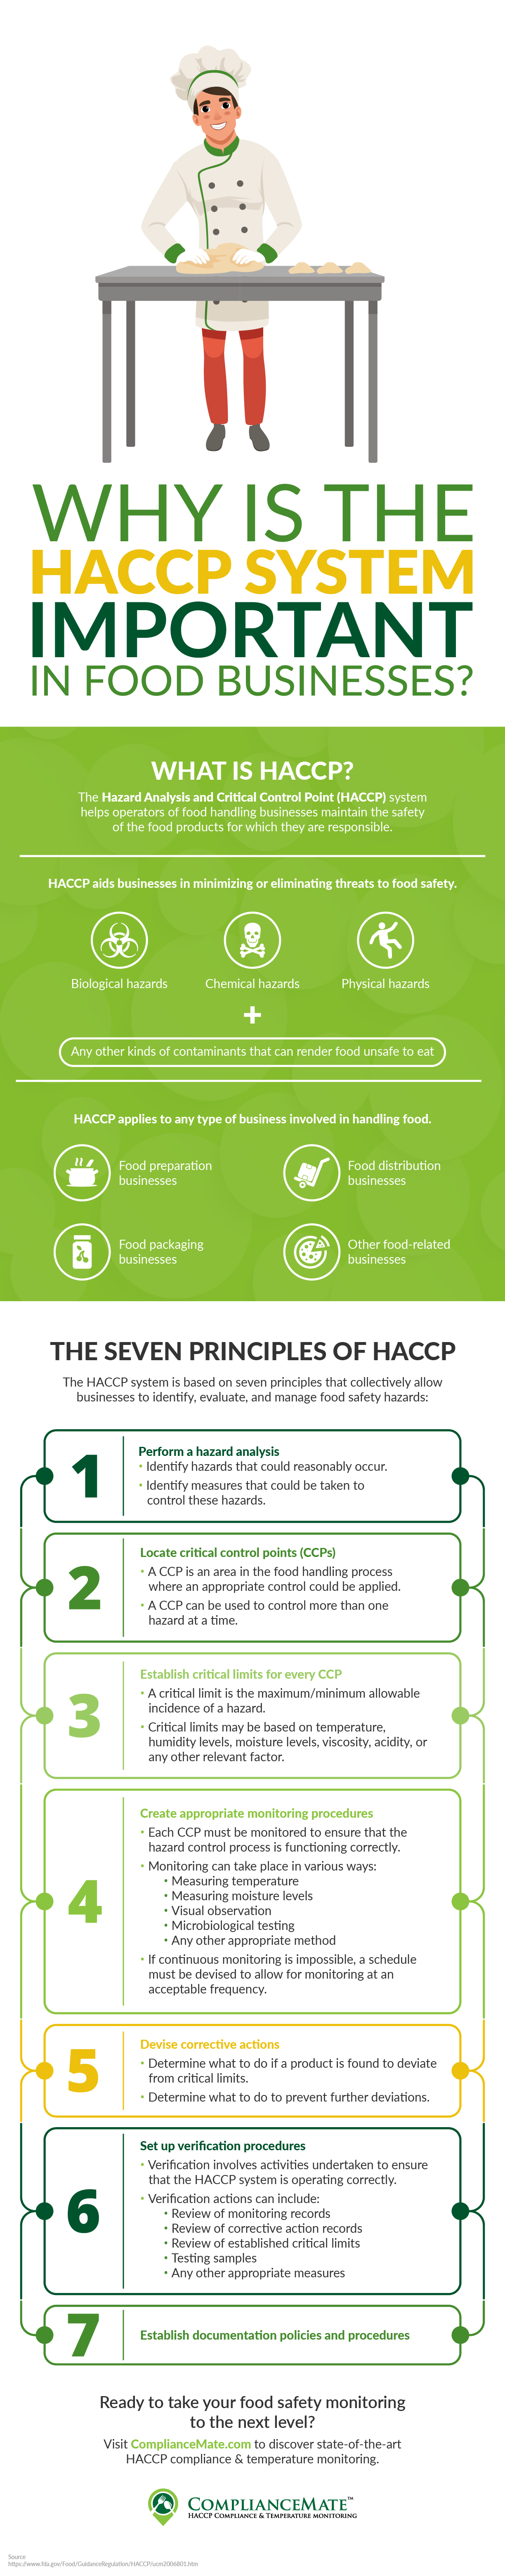 Why Is the HACCP System Important in Food Businesses